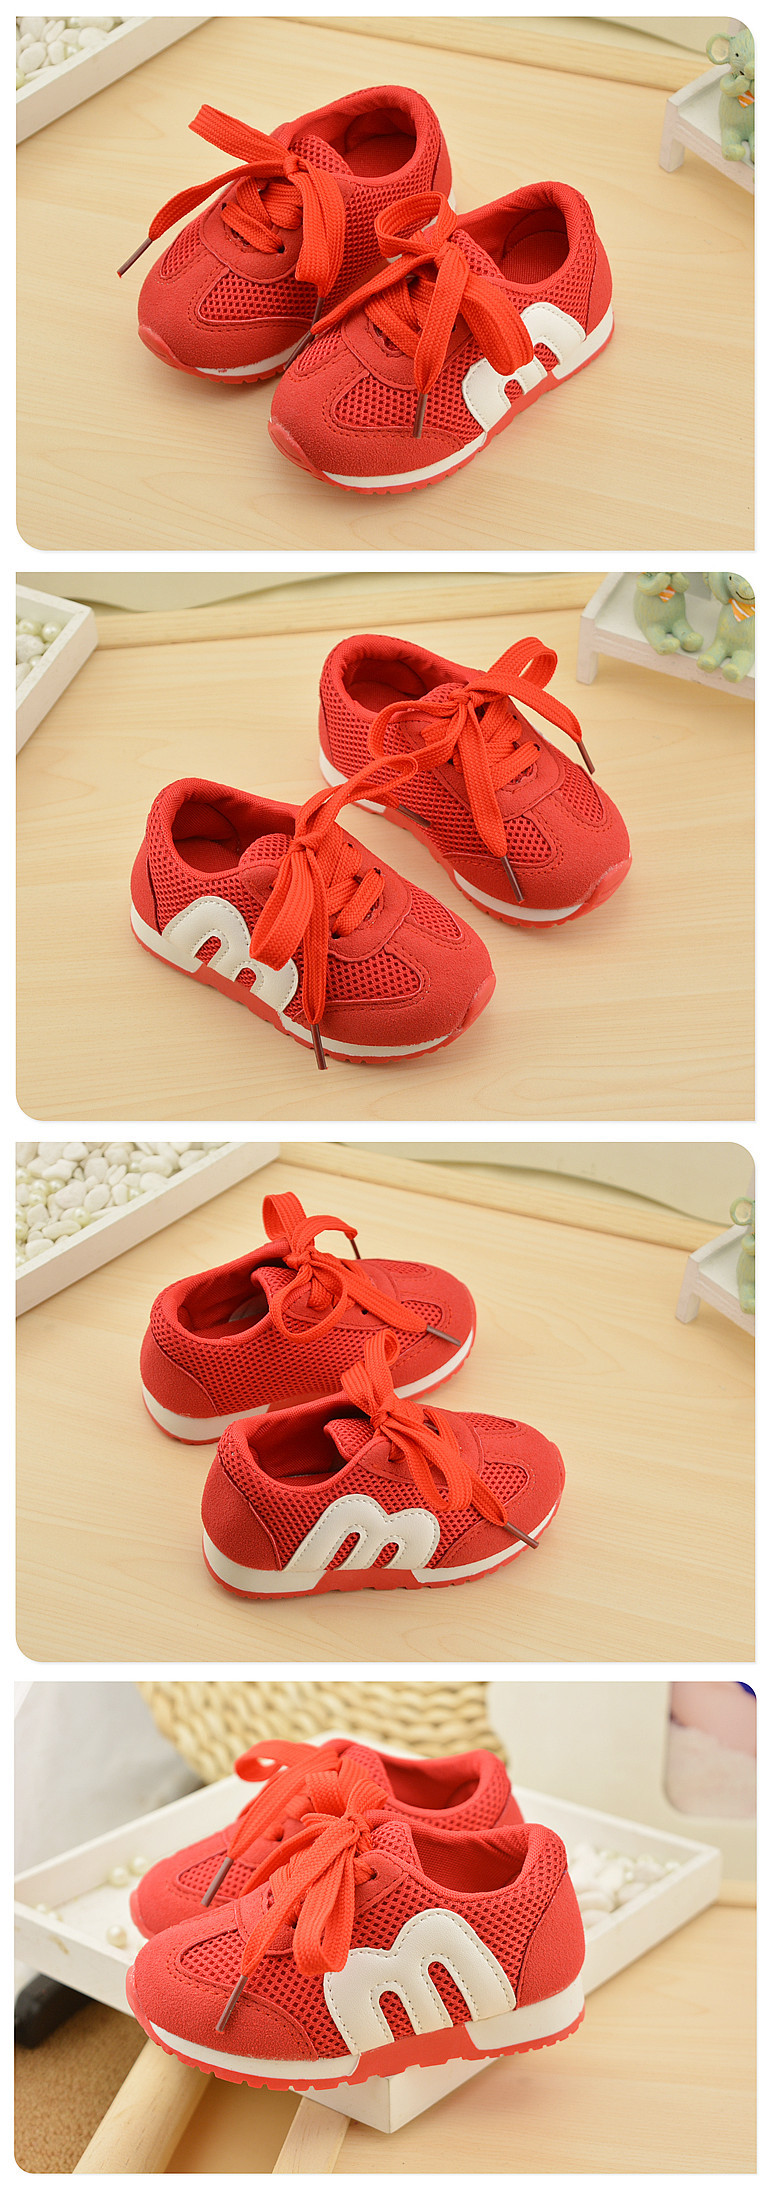 19 New Brand Spring Comfortable Sneakers Boy Girl Children's Sports Casual Shoes Breathable Mesh Baby Kids Soft Bottom Shoes 3